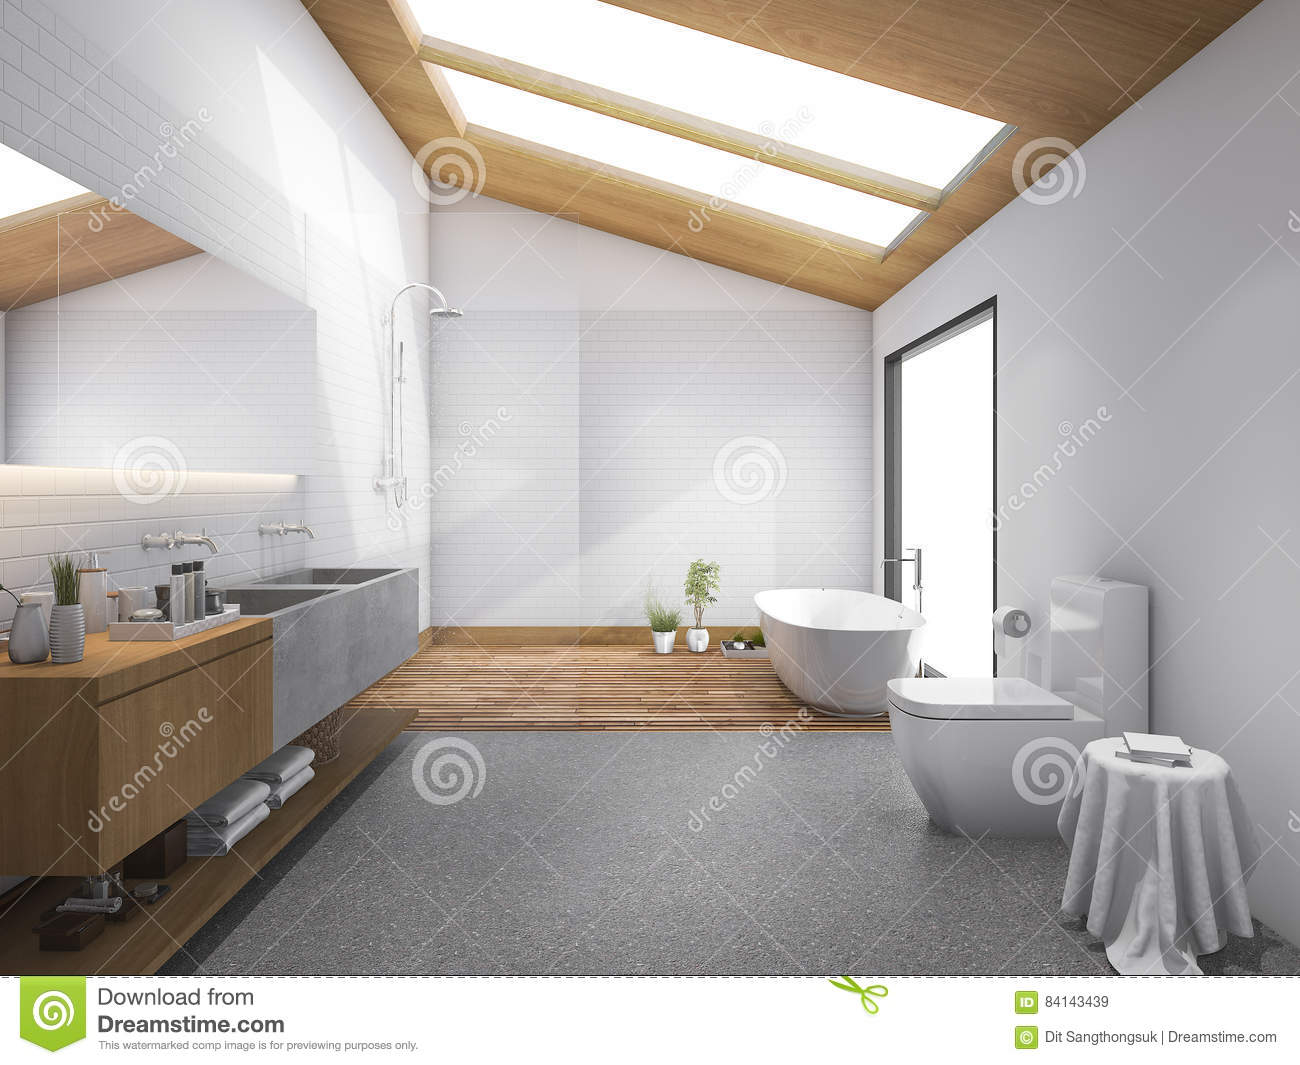 Download 3d Rendering Skylight Wood Roof With Modern Design Bathroom And  Toilet Stock Illustration   Illustration